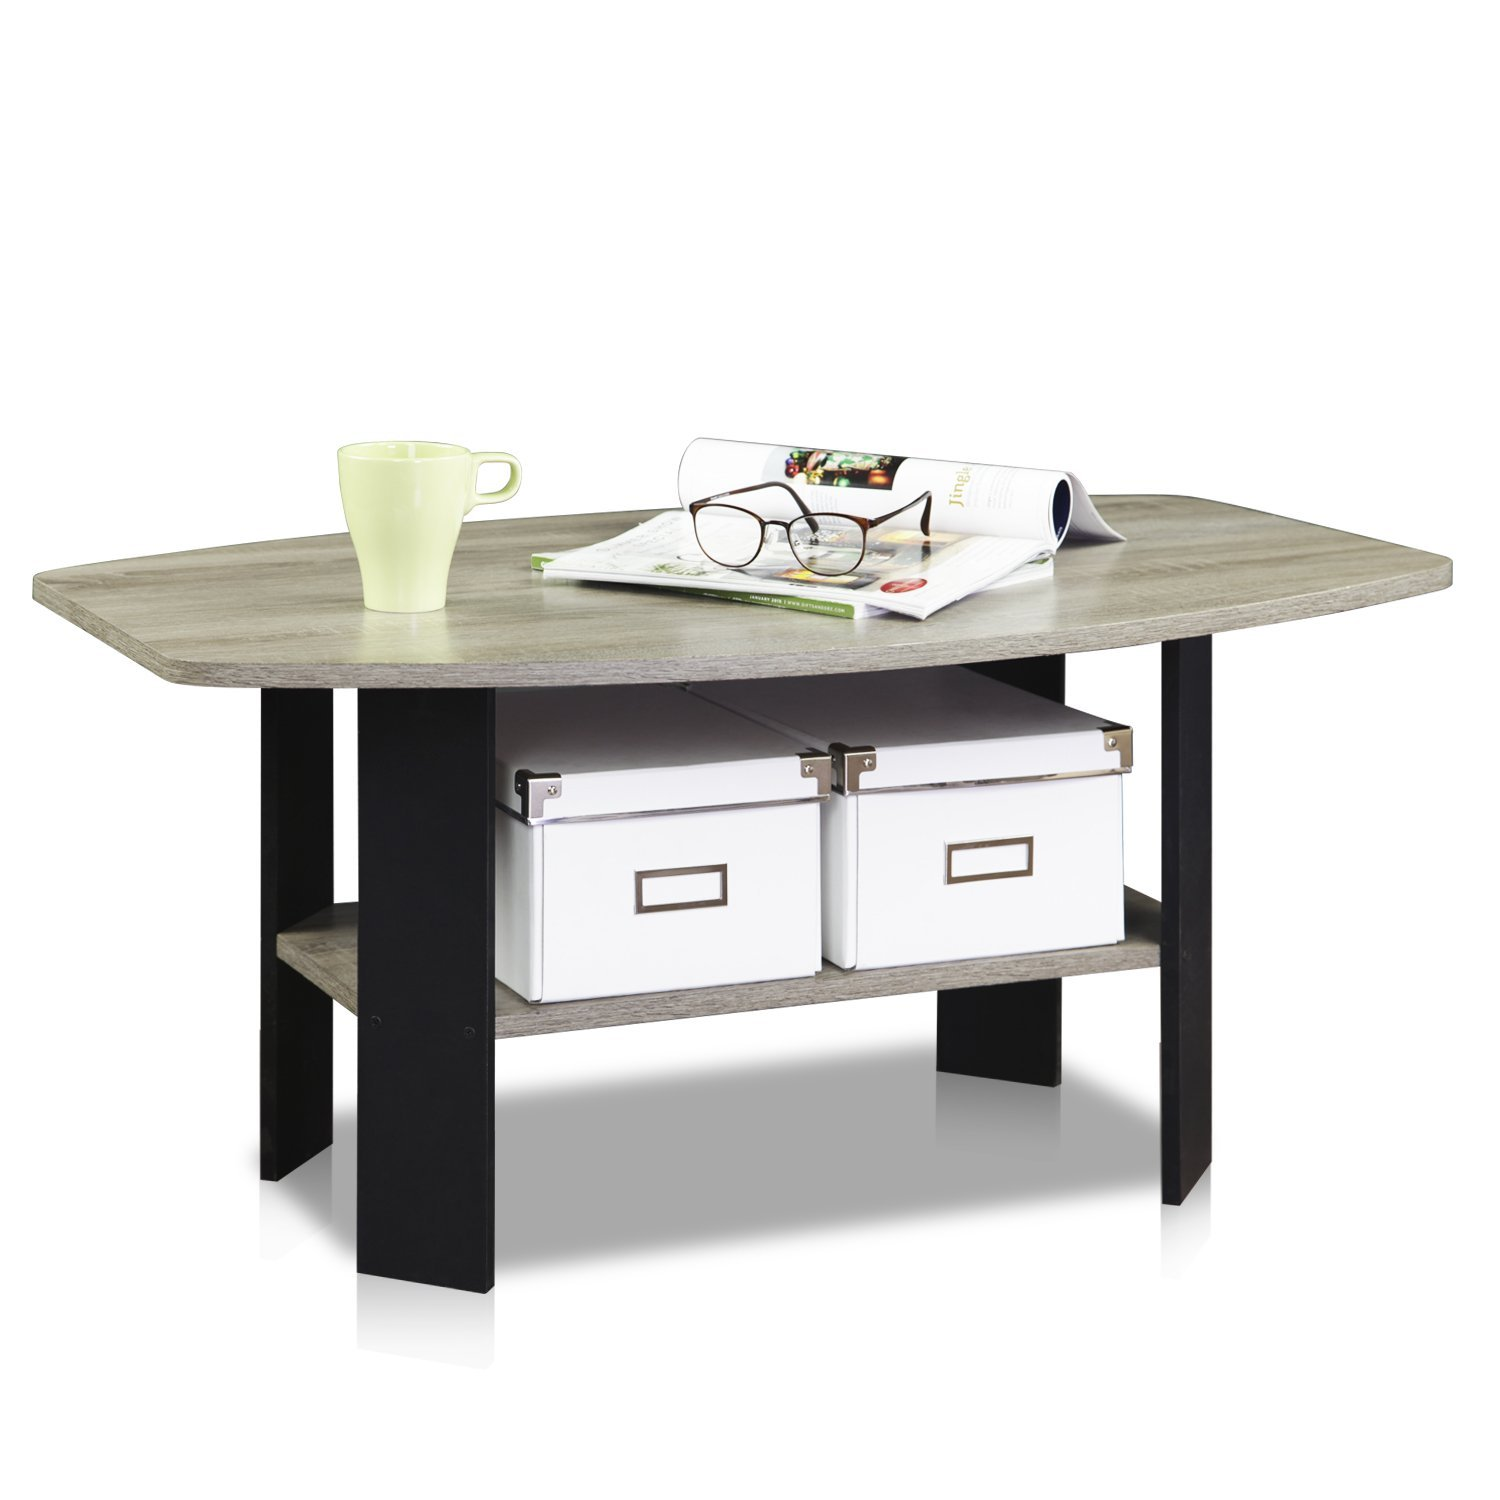 Amazon.com: FURINNO 11179GYW/BK Simple Design Coffee Table: Kitchen & Dining